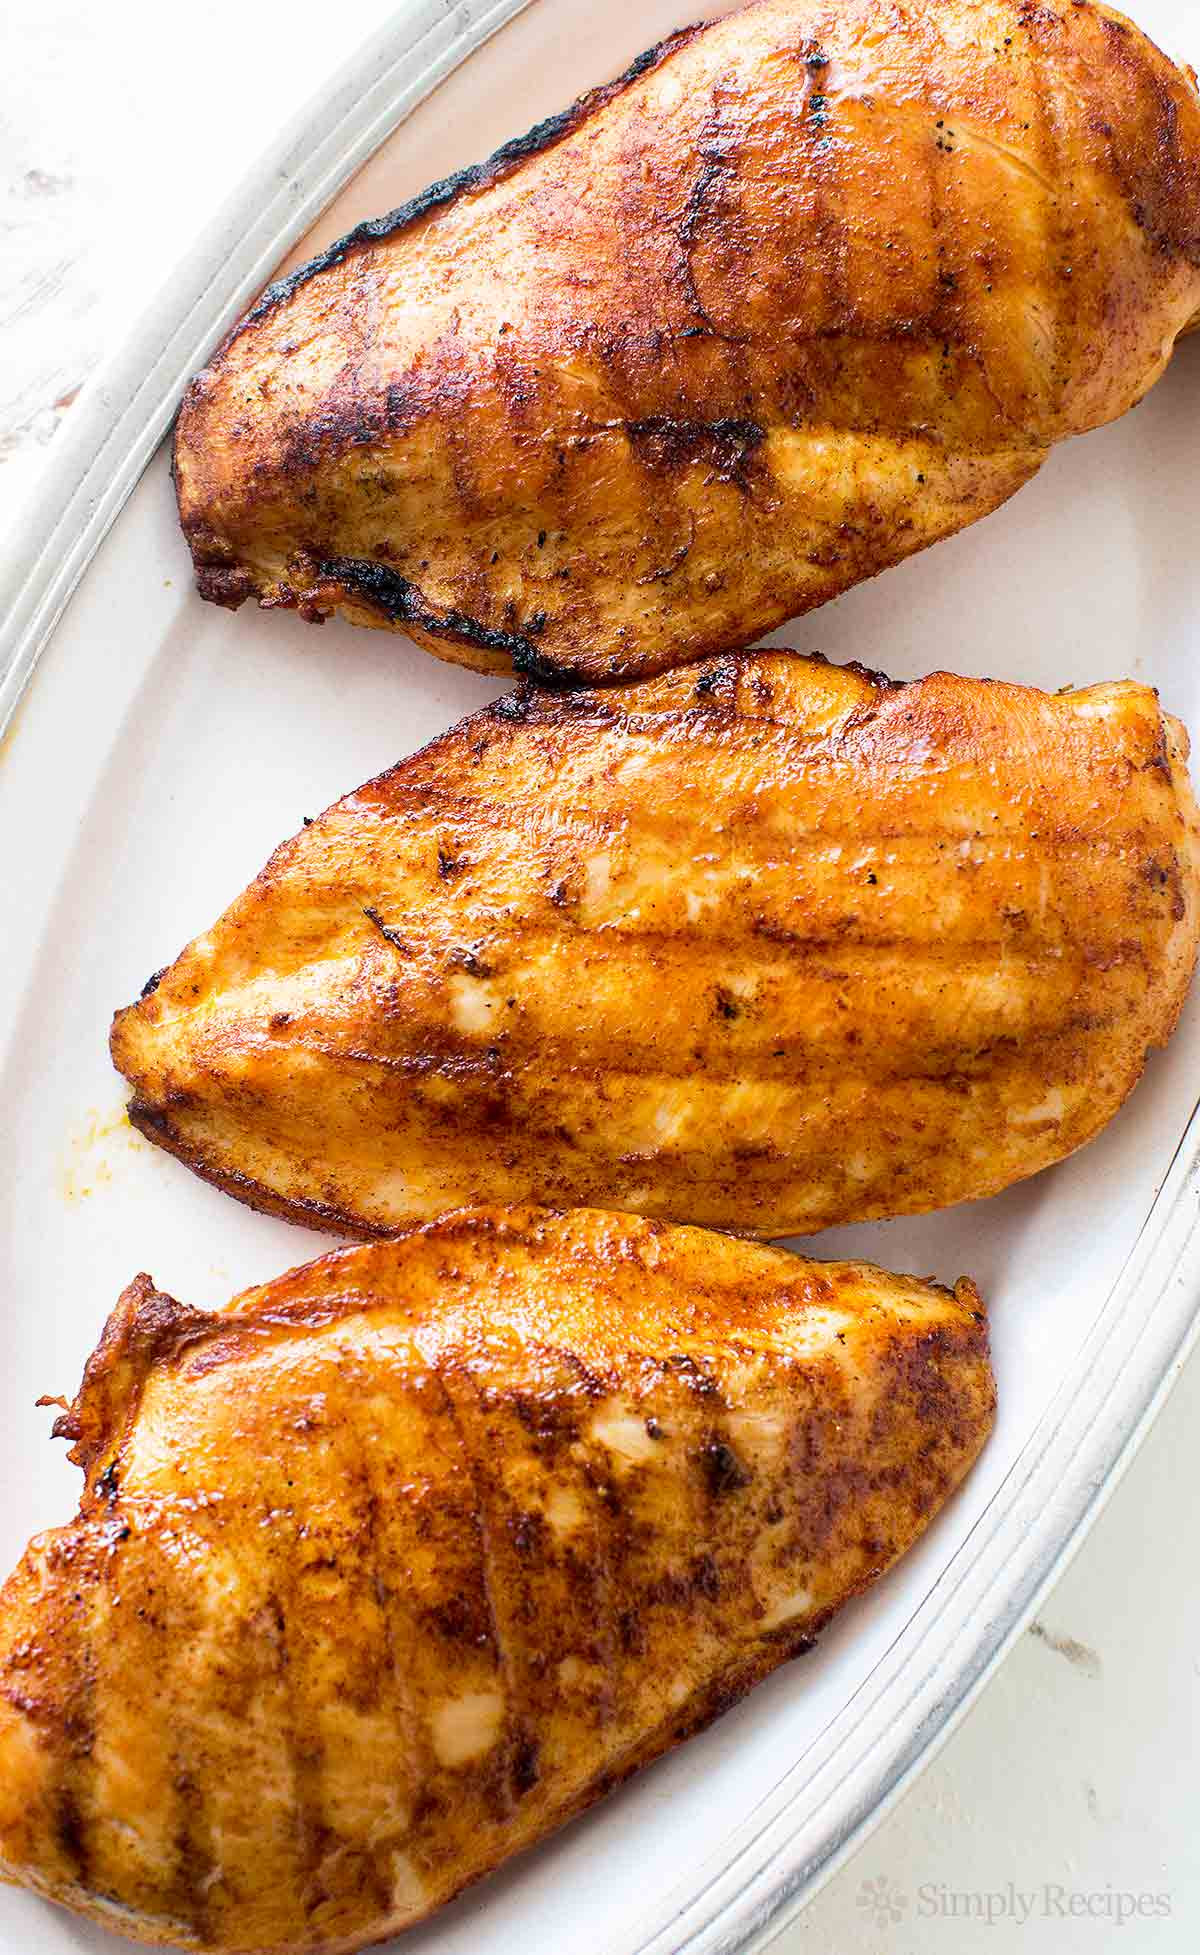 Recipes With Chicken Breasts  How to Grill Juicy Boneless Skinless Chicken Breasts